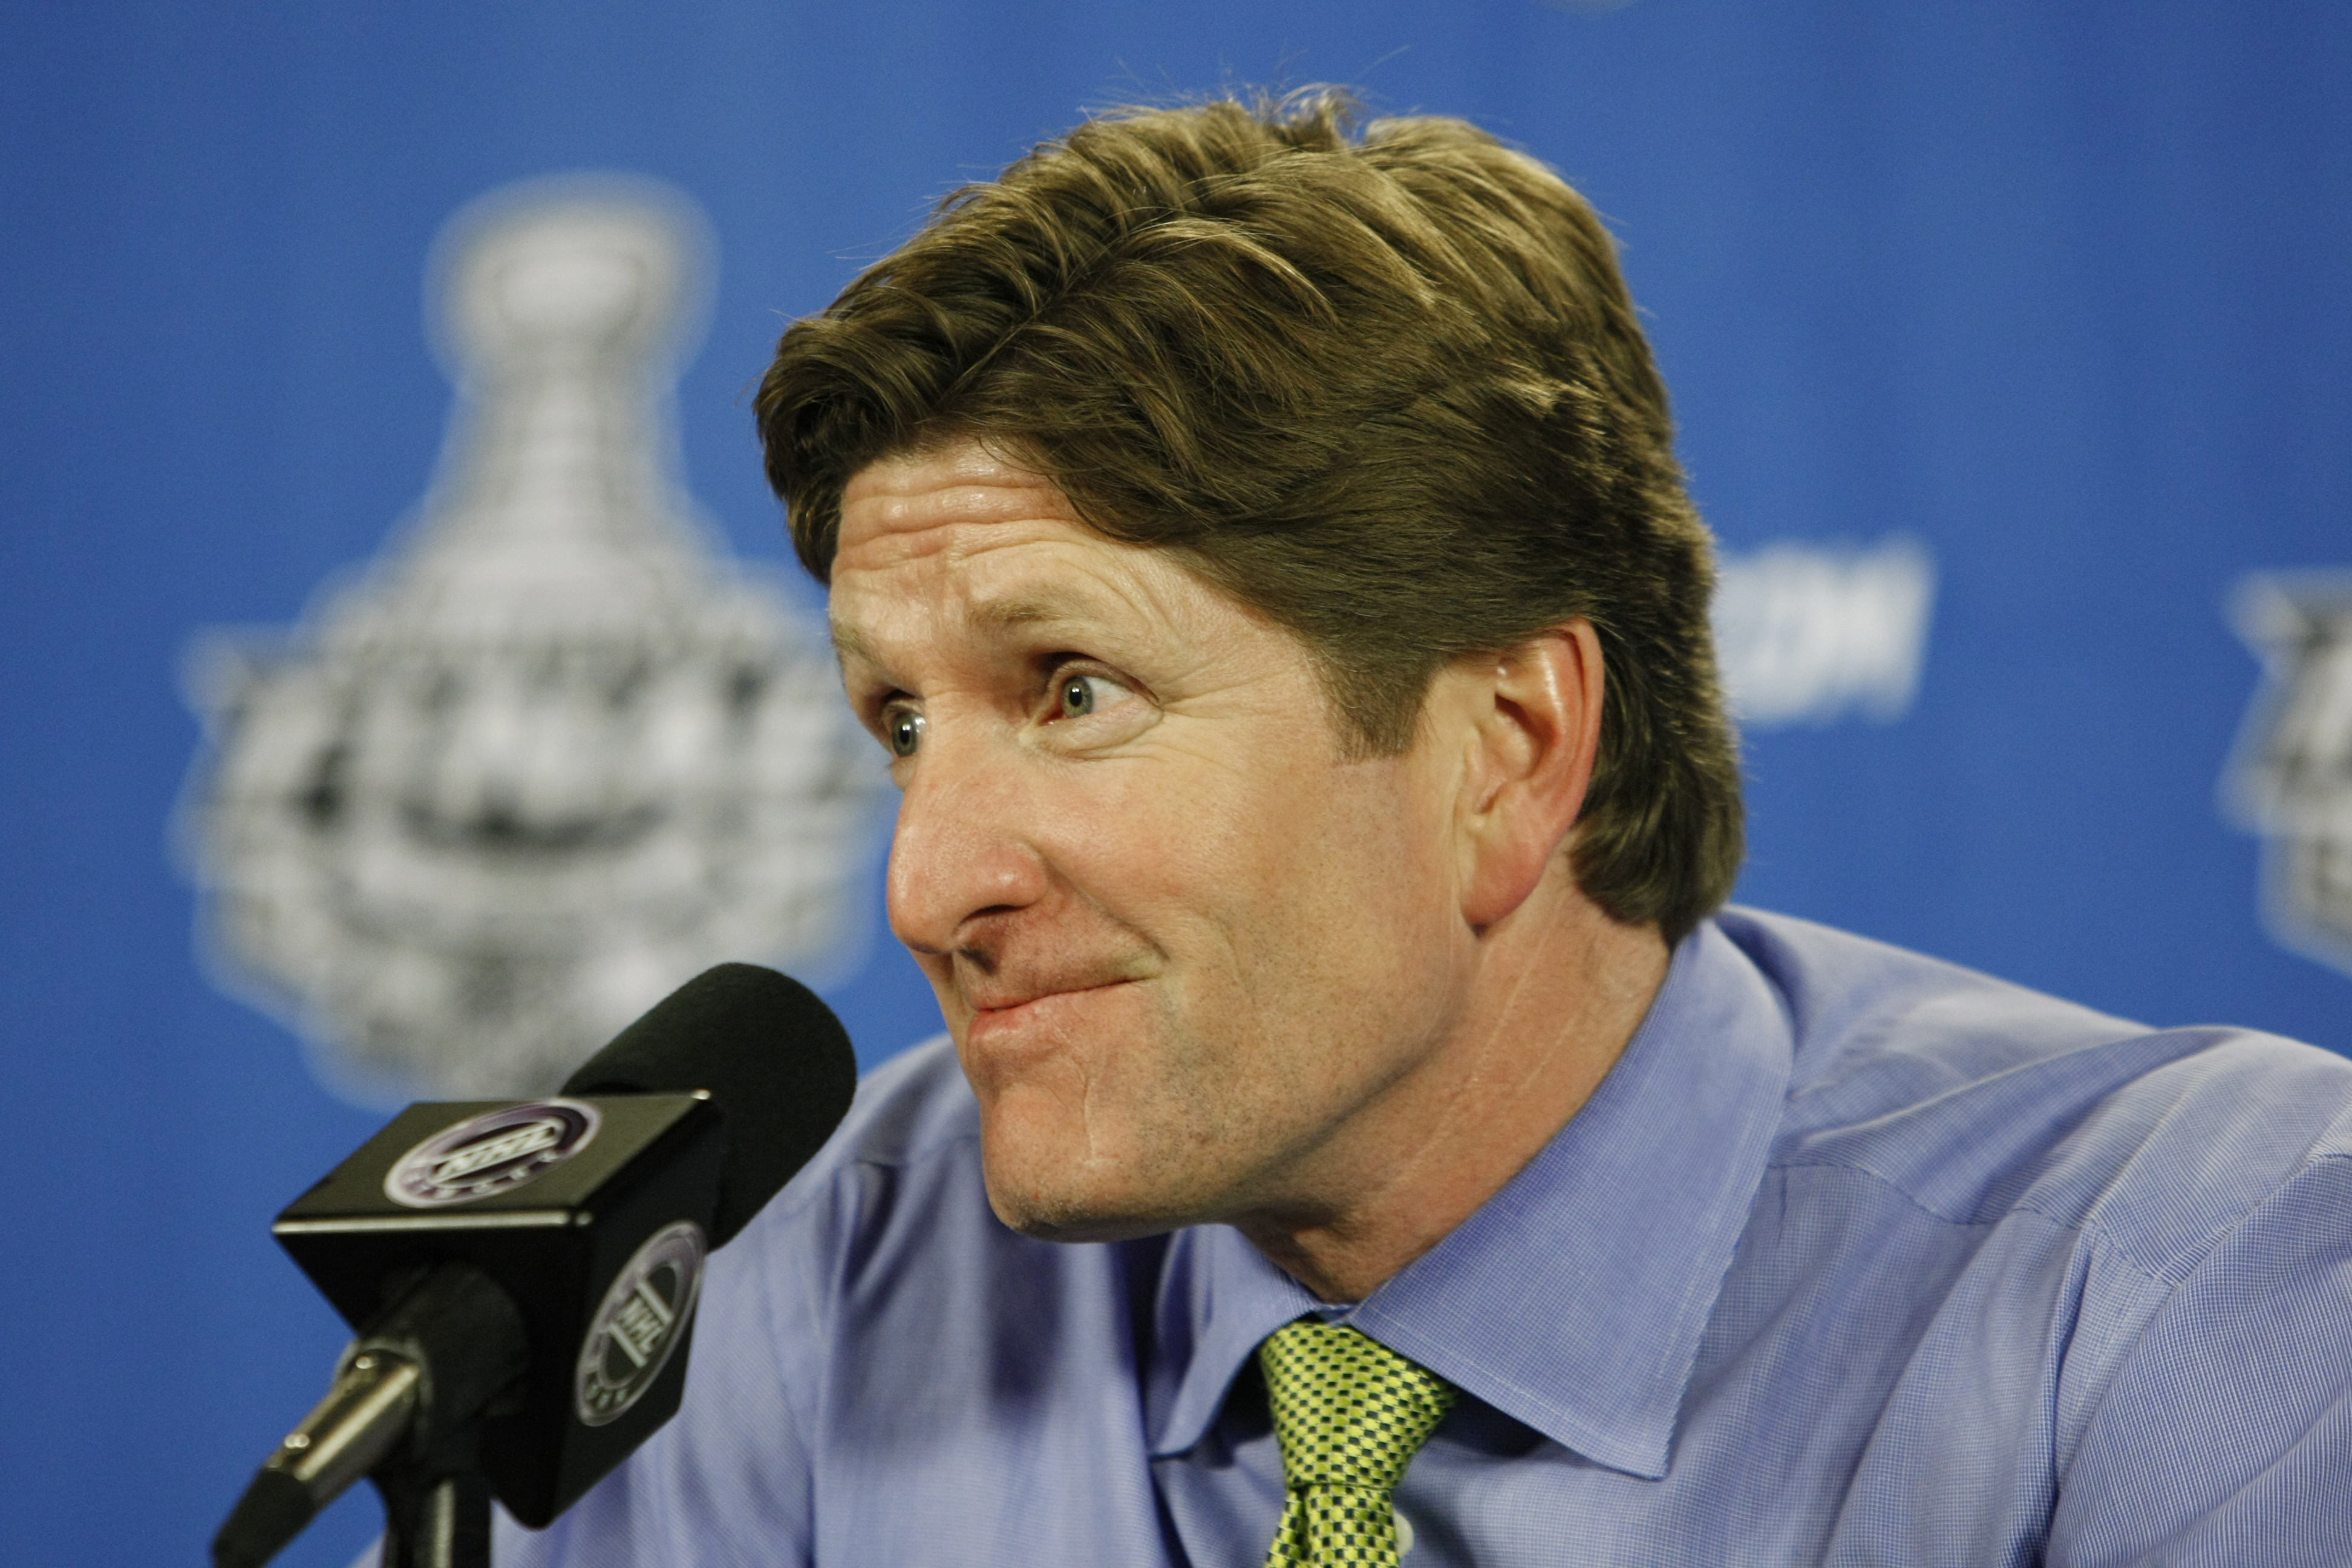 Detroit Red Wings head coach Mike Babcock answers questions during a news conference at the NHL hockey Stanley Cup finals in Pittsburgh, Tuesday, June 2, 2009. (AP Photo/Keith Srakocic)